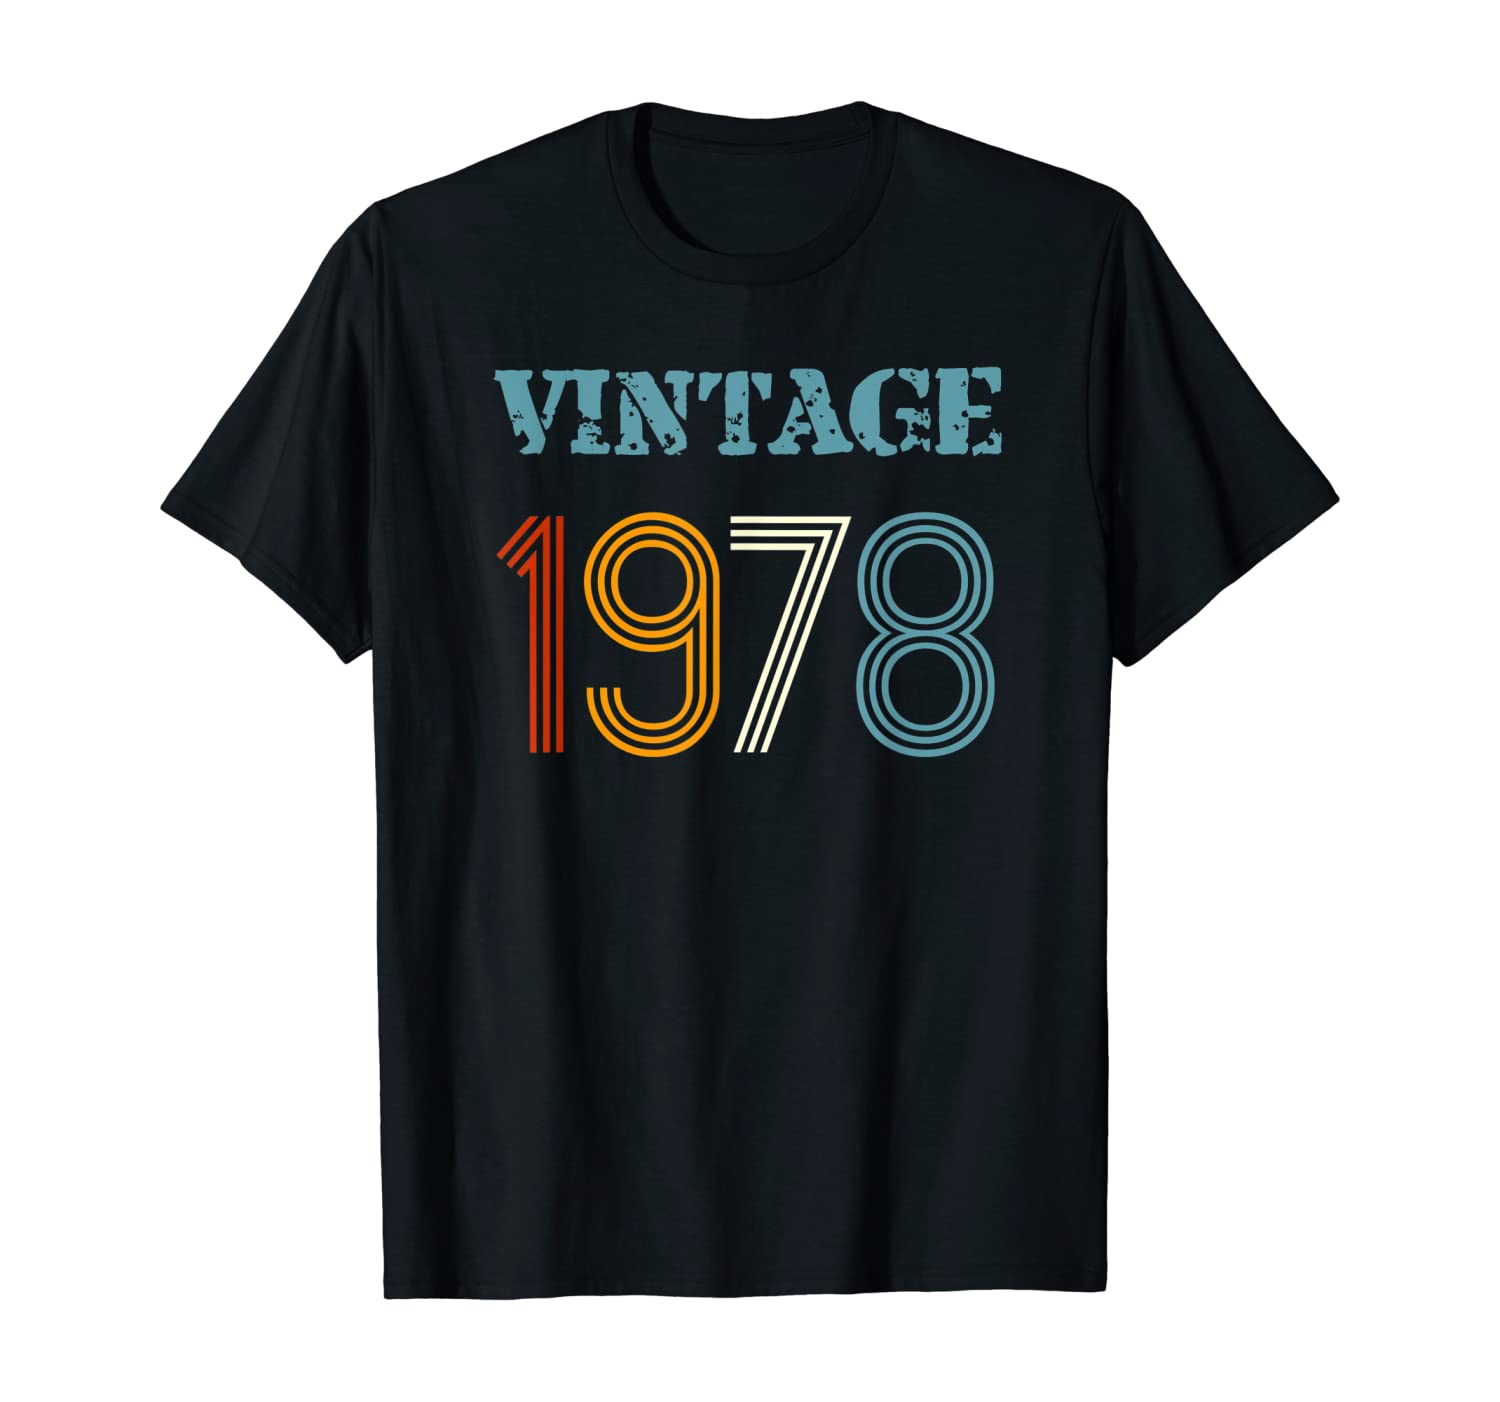 40th Birthday T Shirt Made In 1978 Novelty Gift Idea Vintage Mens Funny T SHIRT